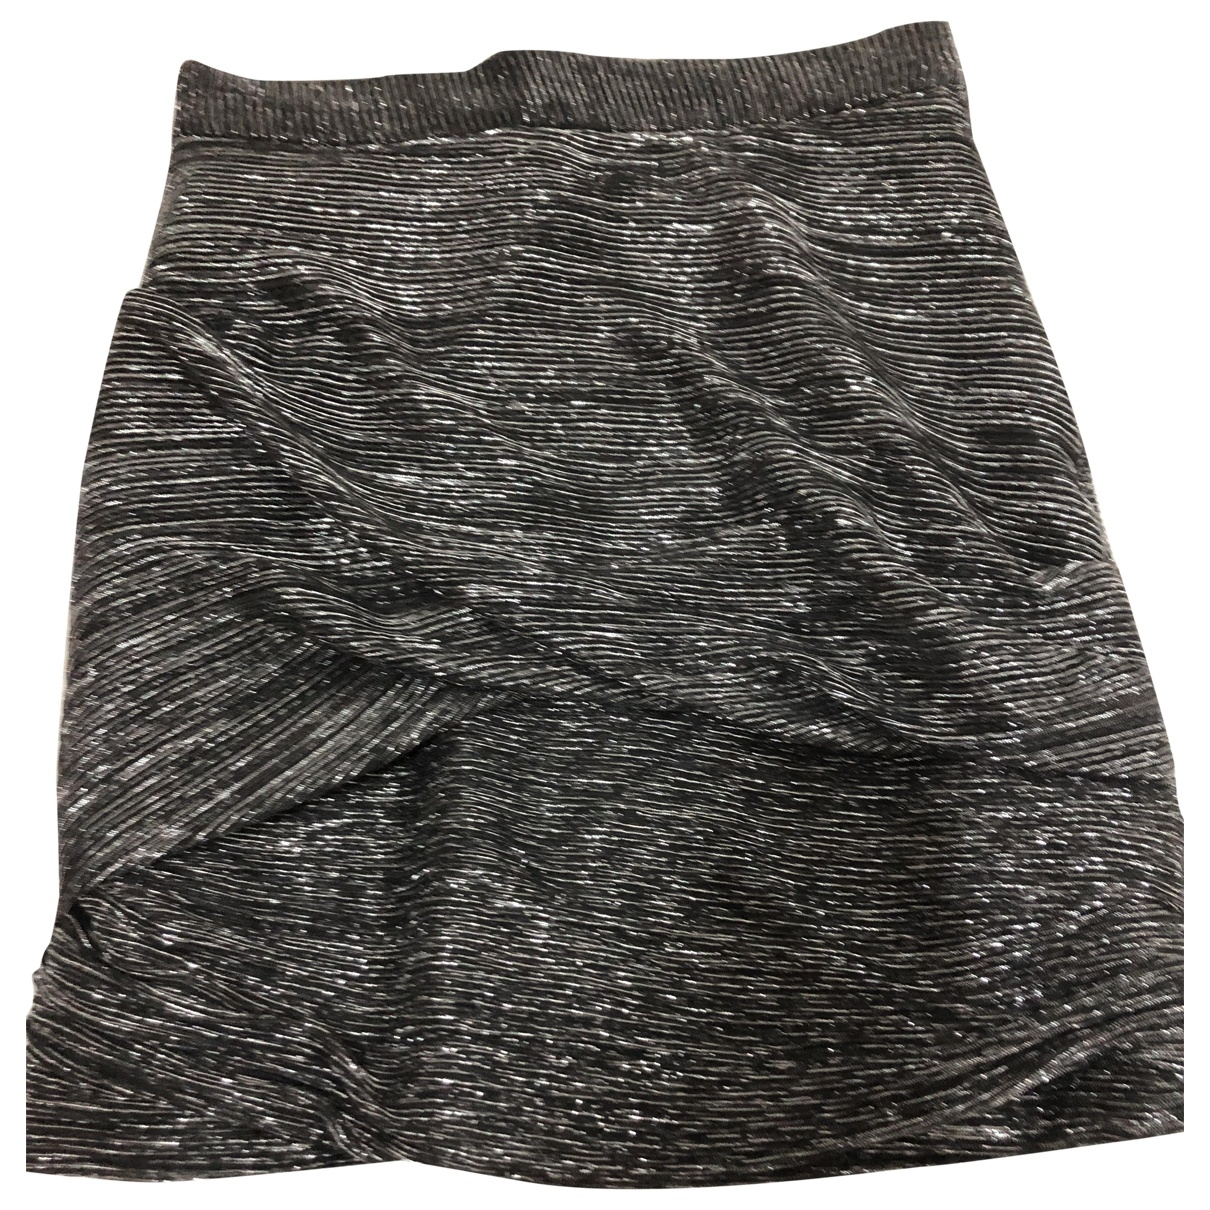 Maje \N Silver skirt for Women 38 FR